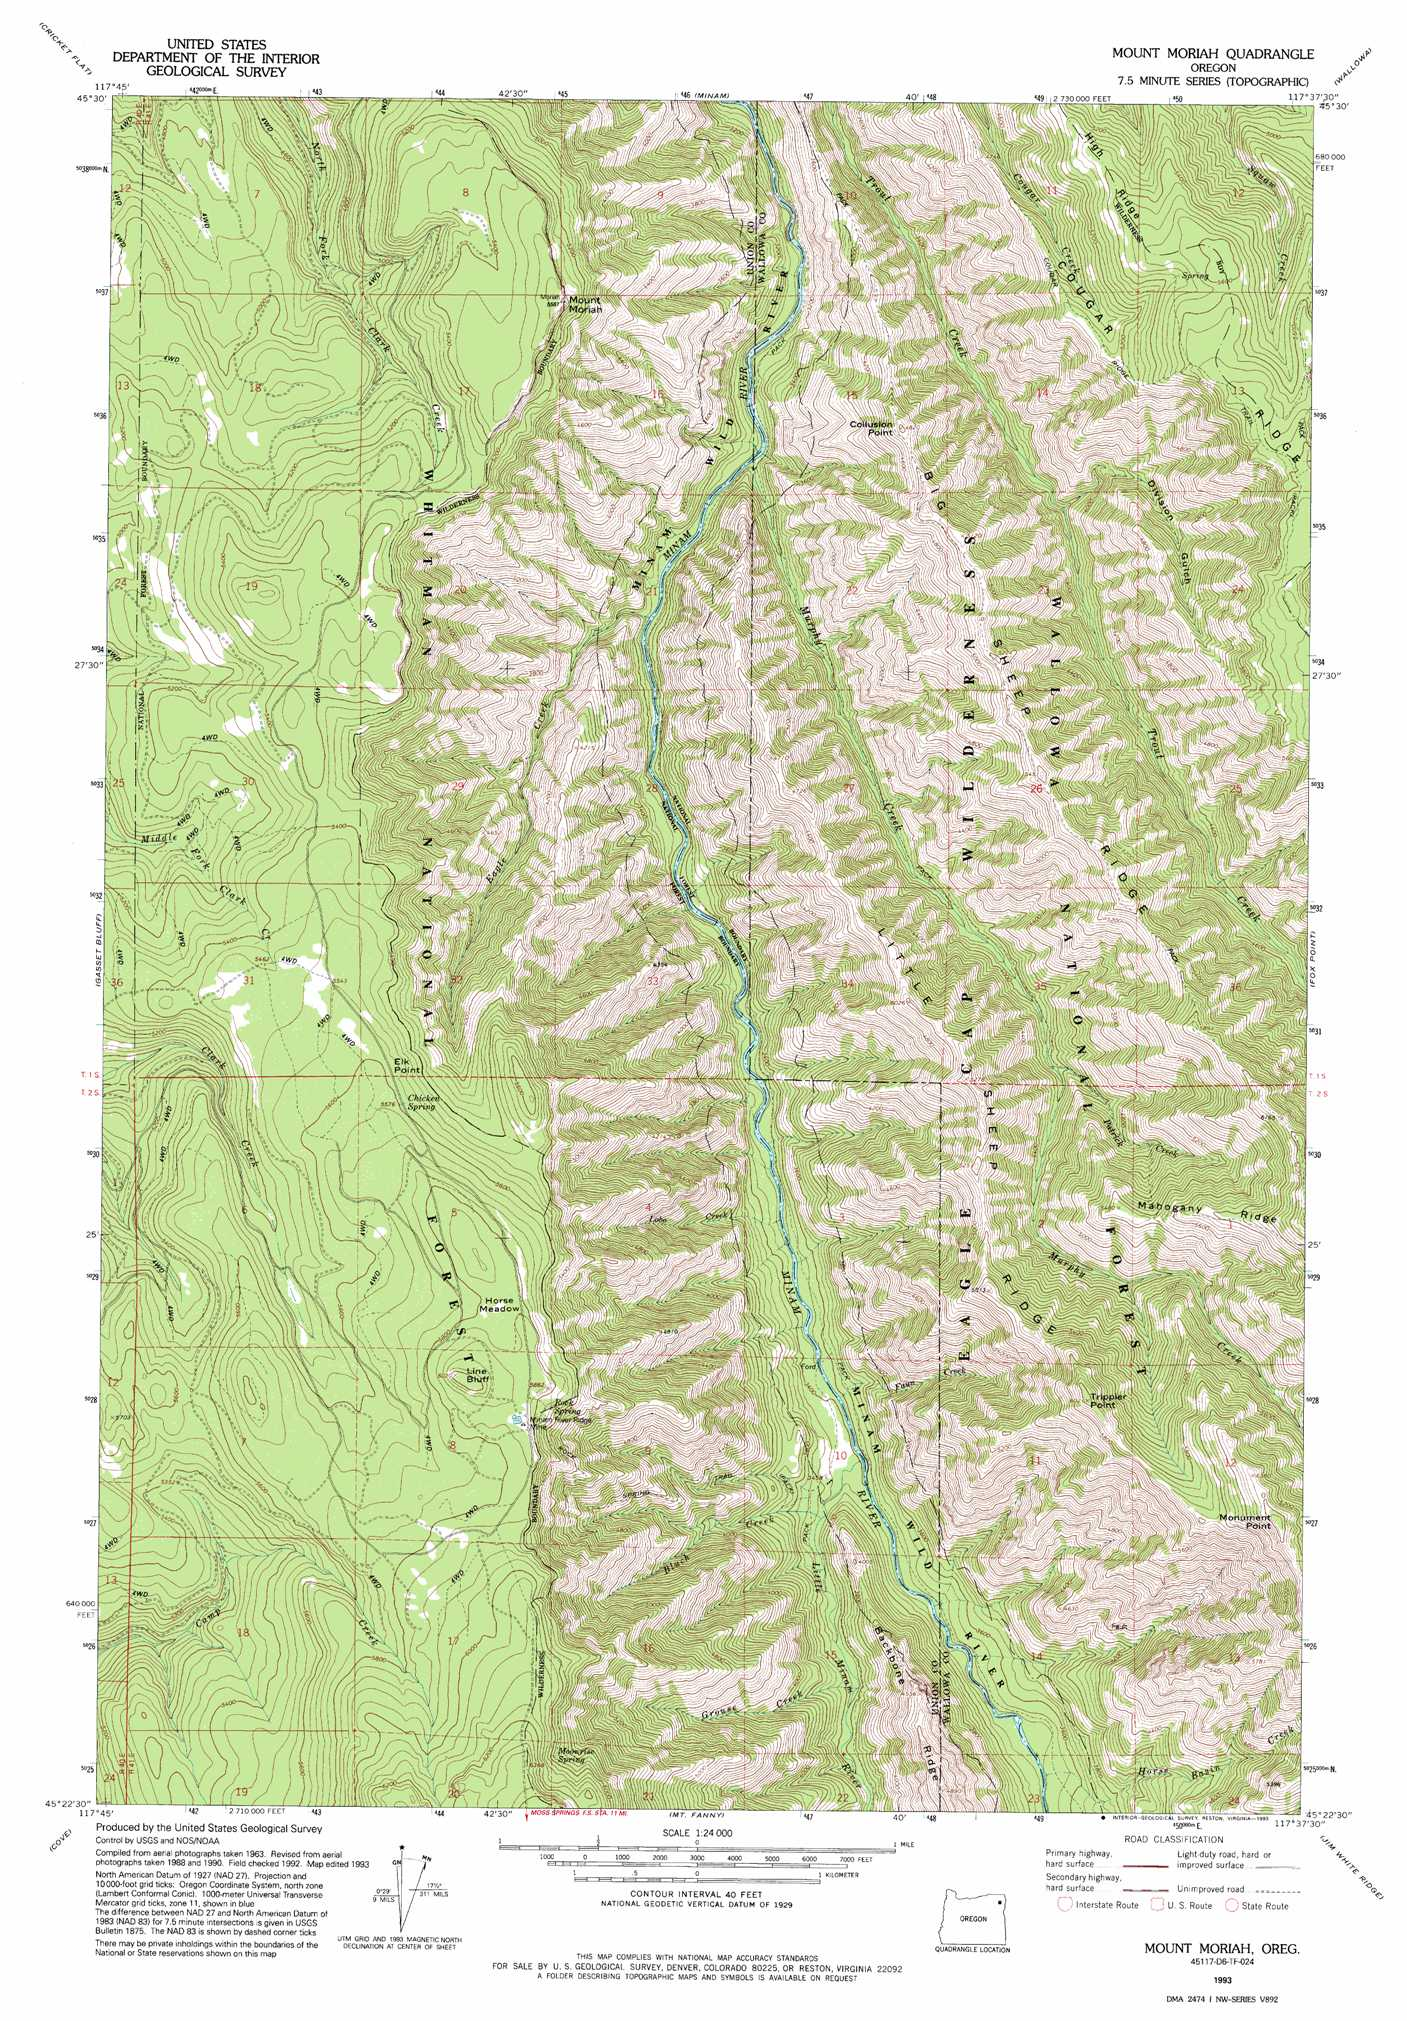 Mount Moriah topographic map, OR - USGS Topo Quad 45117d6 on carter notch map, carroll map, mount hermon map, mount ebal map, mount carrigain map, land of moriah map, st. john's map, mount calvary map, mount paran map, mount zion, huntington ravine map, the mount of olives map, monadnock state park trail map, mount shechem map, golgotha map, moriah trail map, mount chocorua map, obion county map, mount marathon map, temple mount map,